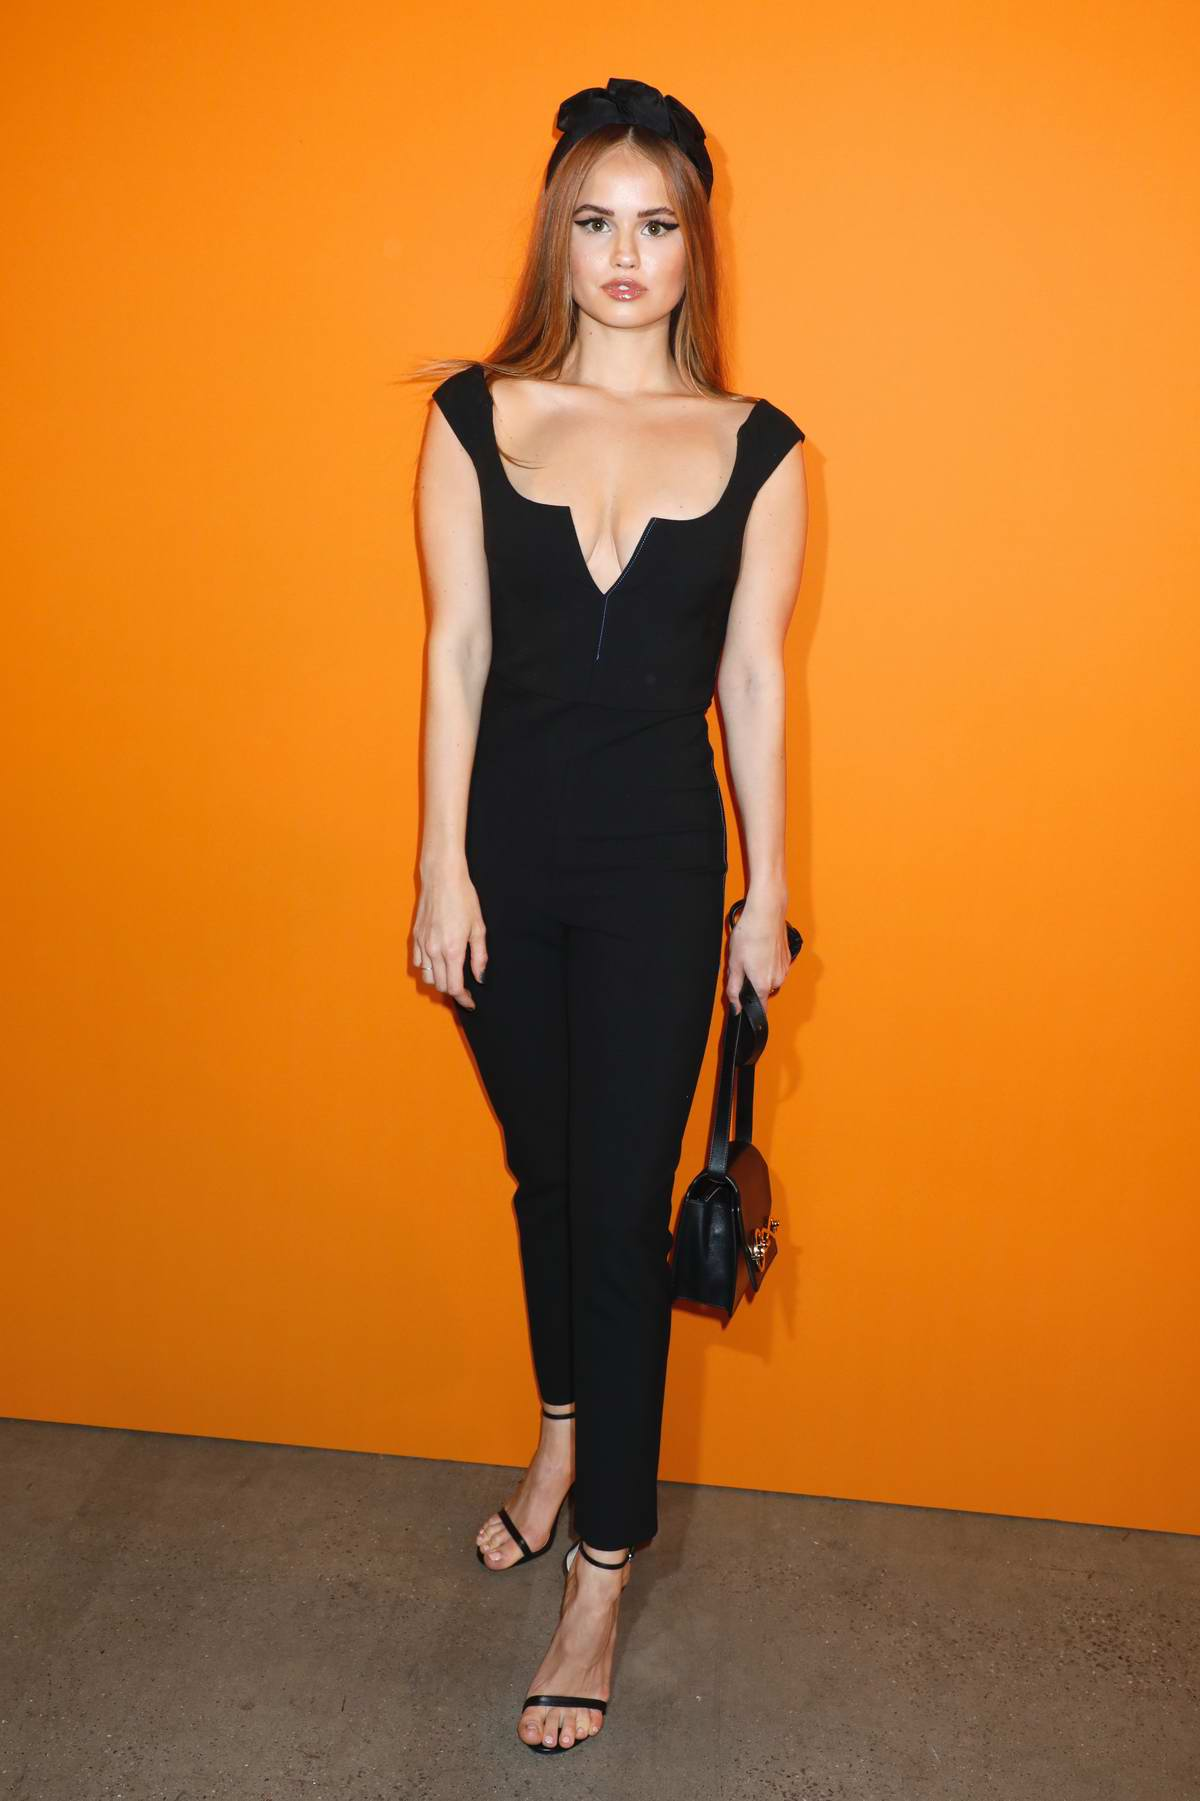 Debby Ryan attends the Cushnie fashion show during New York Fashion Week at Gallery I at Spring Studios in New York City